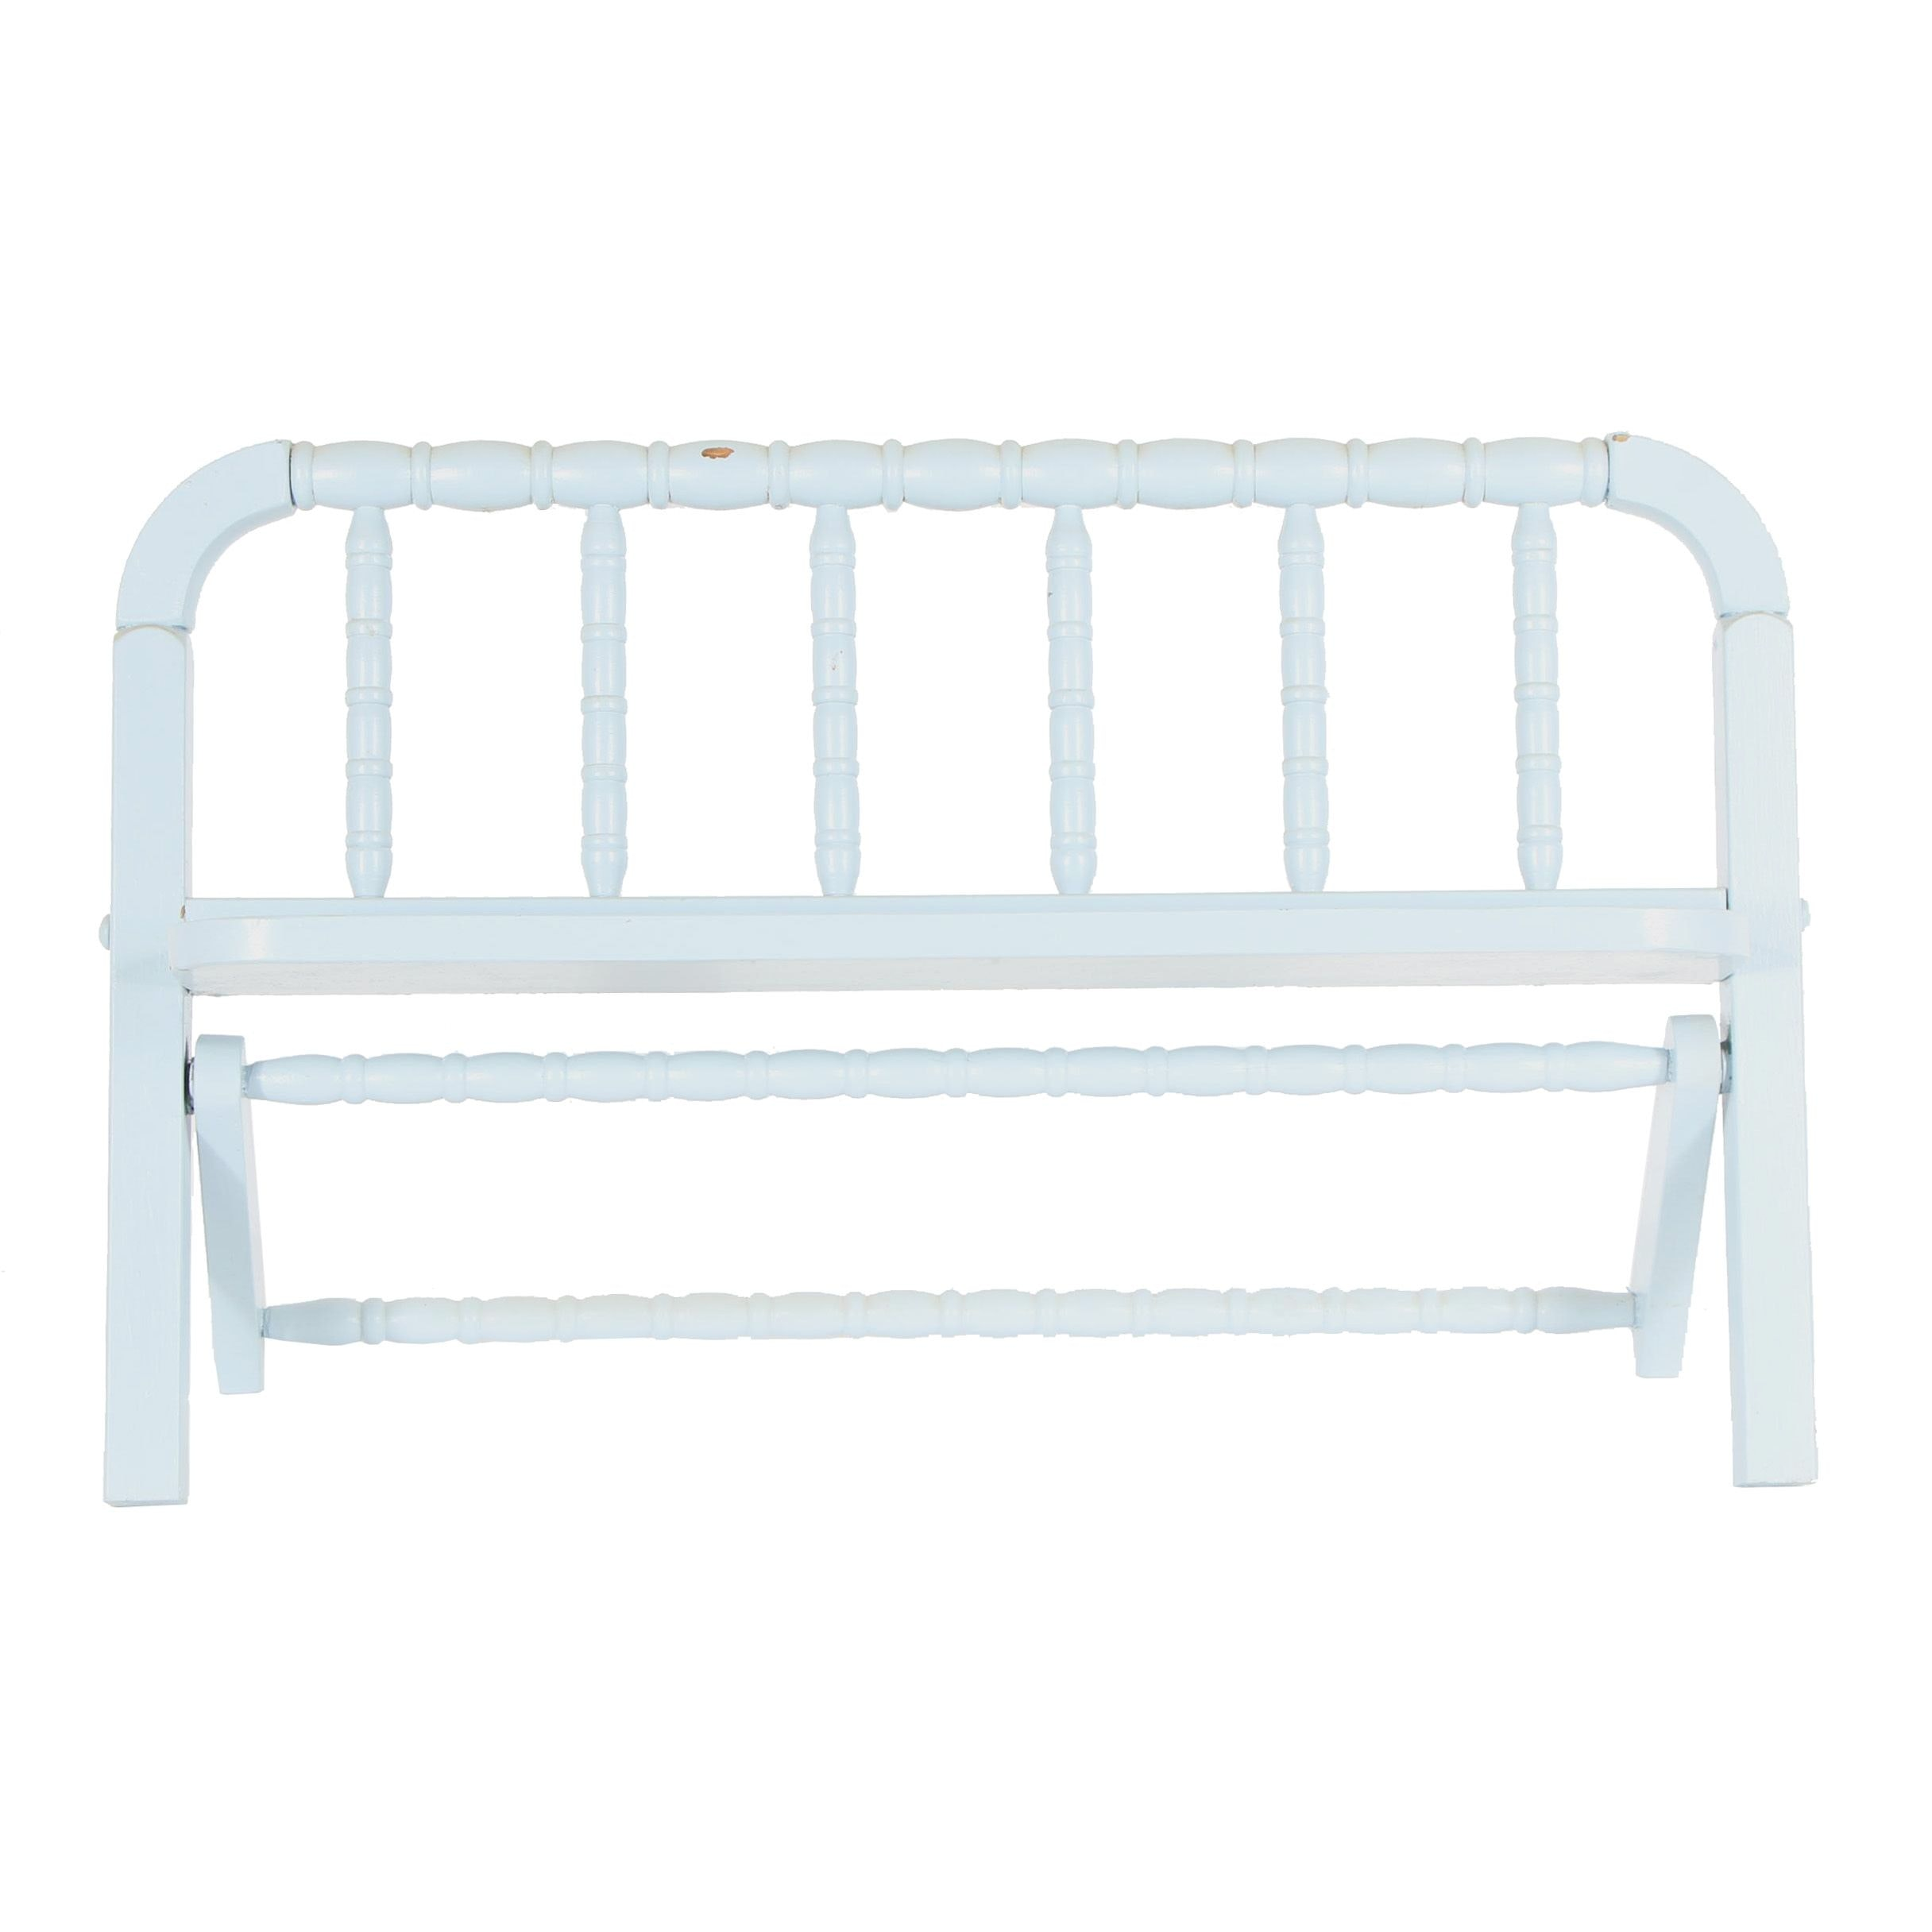 Painted Wood Wall Mount Quilt Rack/Decorative Bench, Late 20th Century